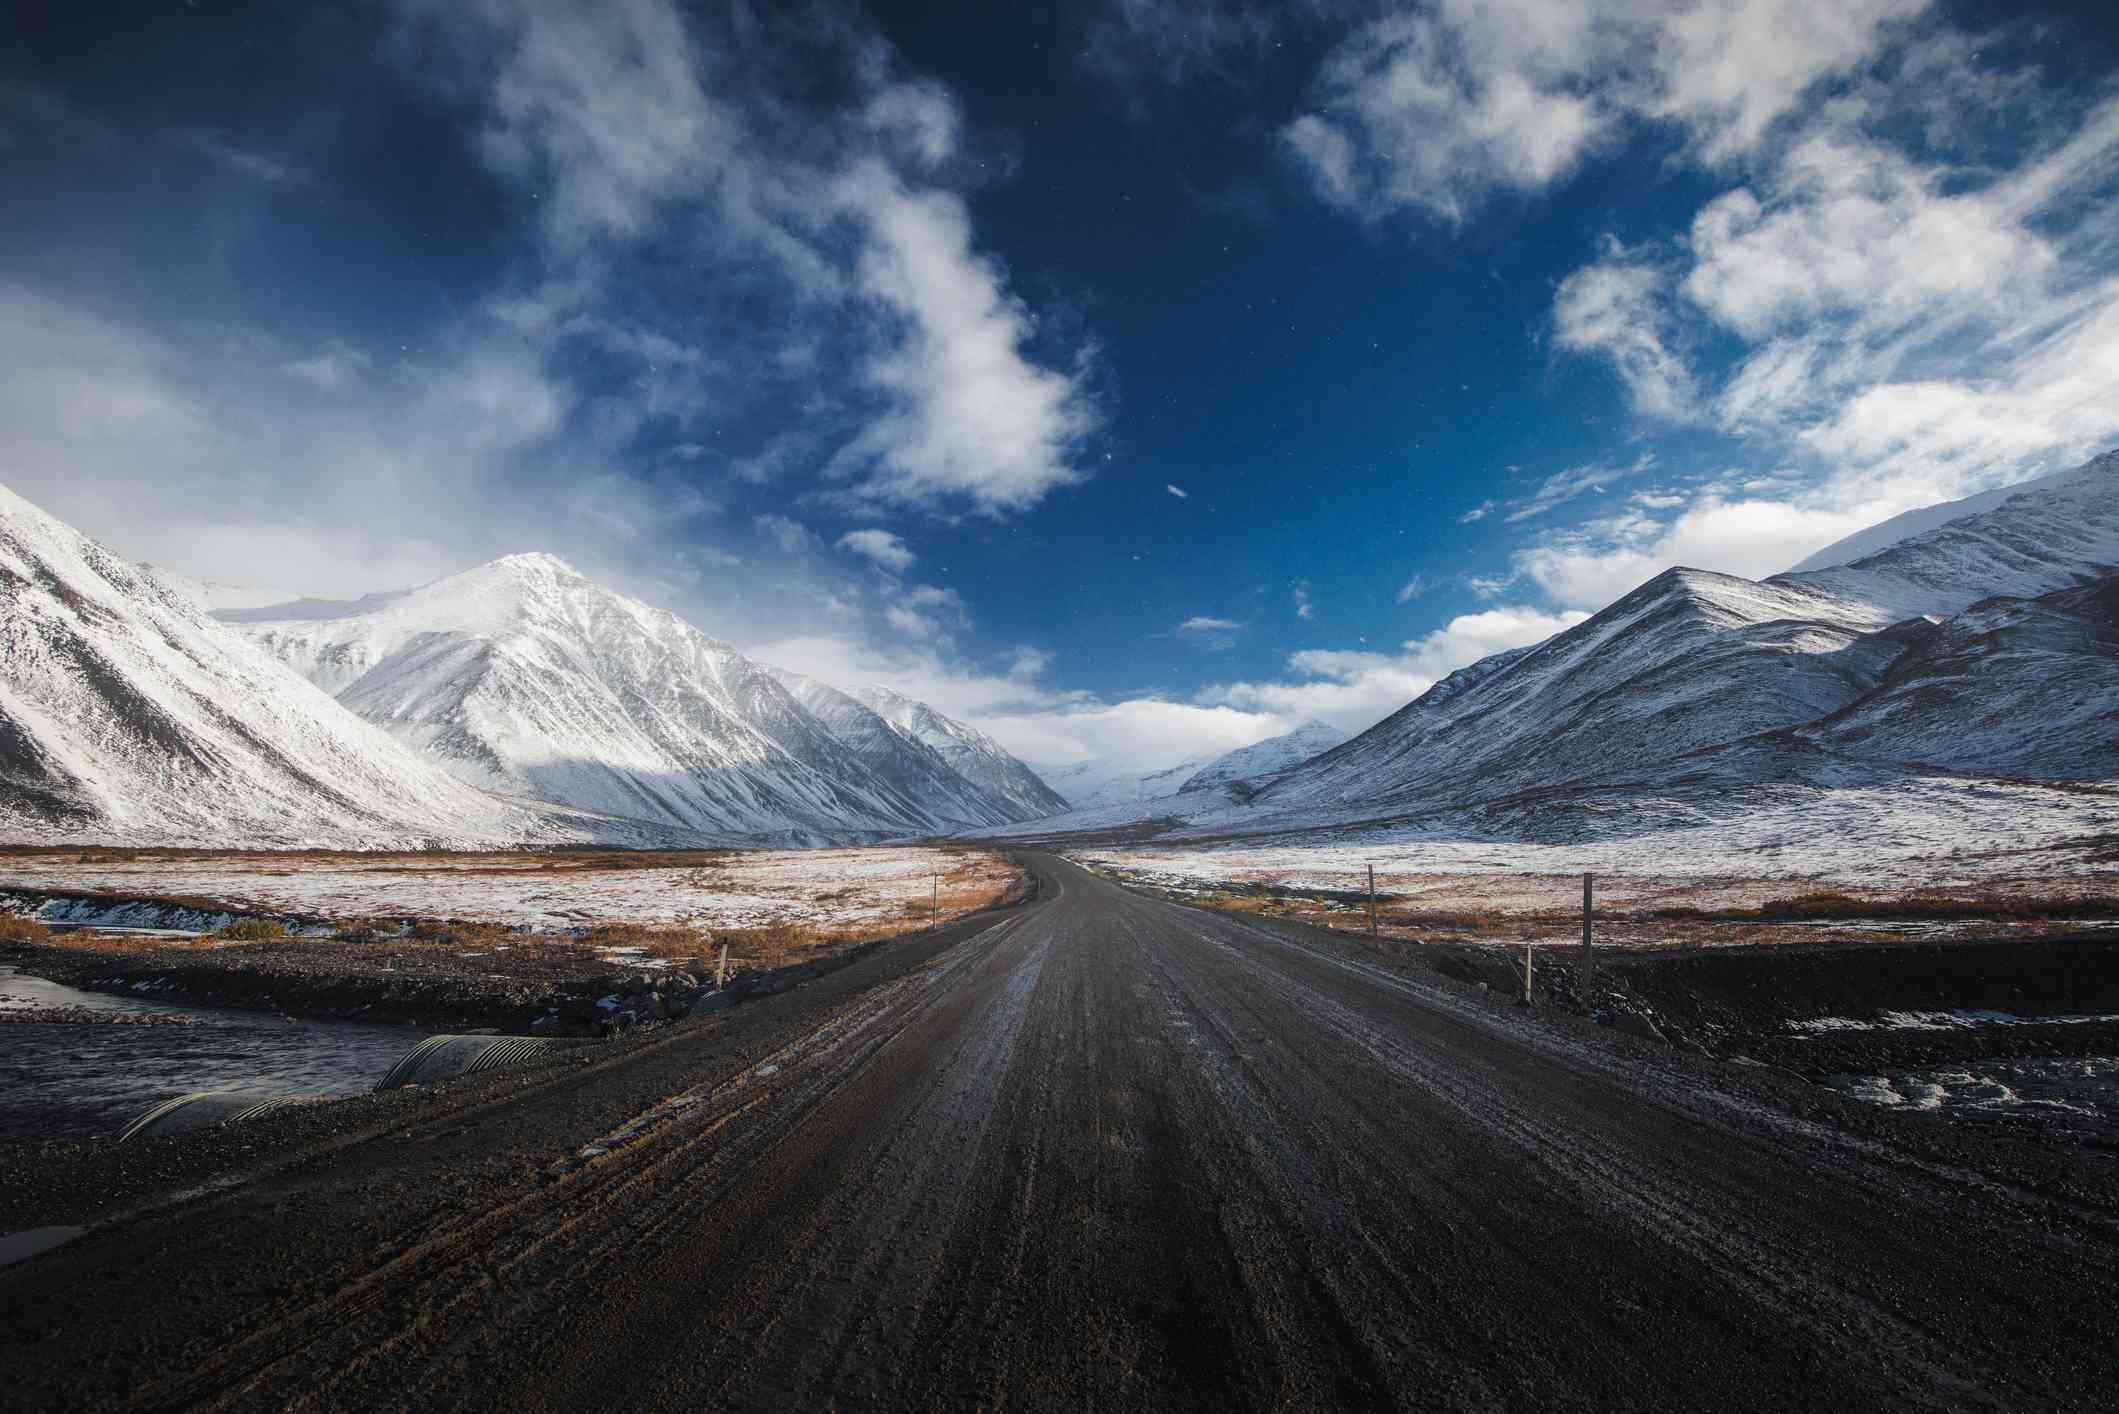 Snowy mountains on both sides of Dalton Highway